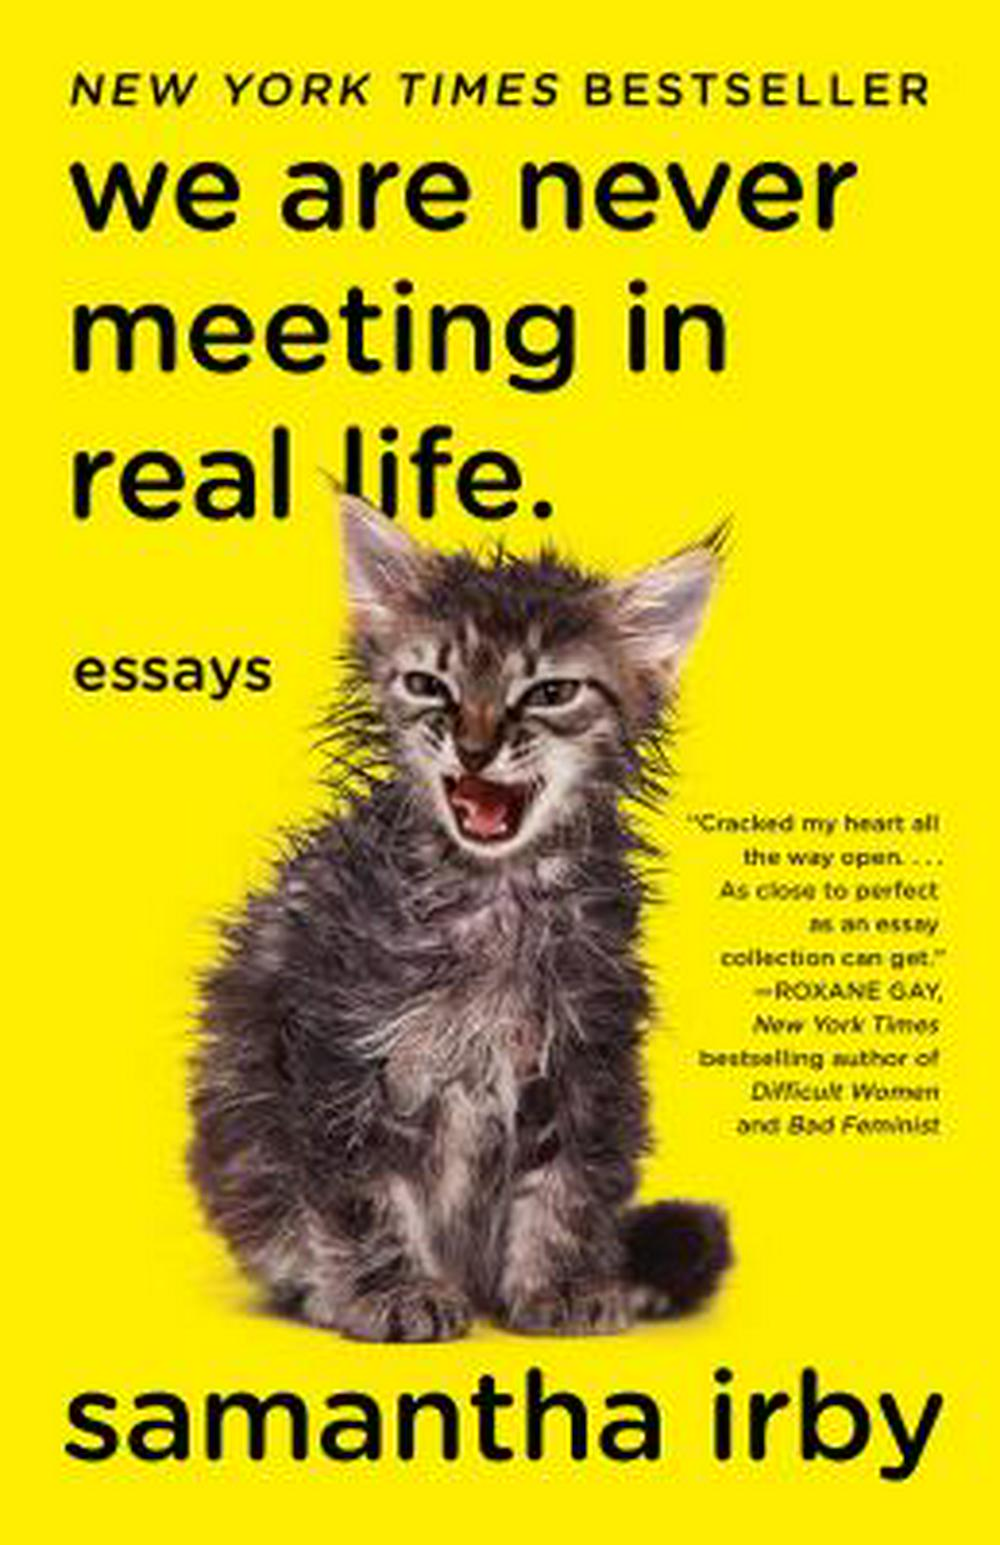 We Are Never Meeting in Real Life. by Samantha Irby, ISBN: 9781101912195